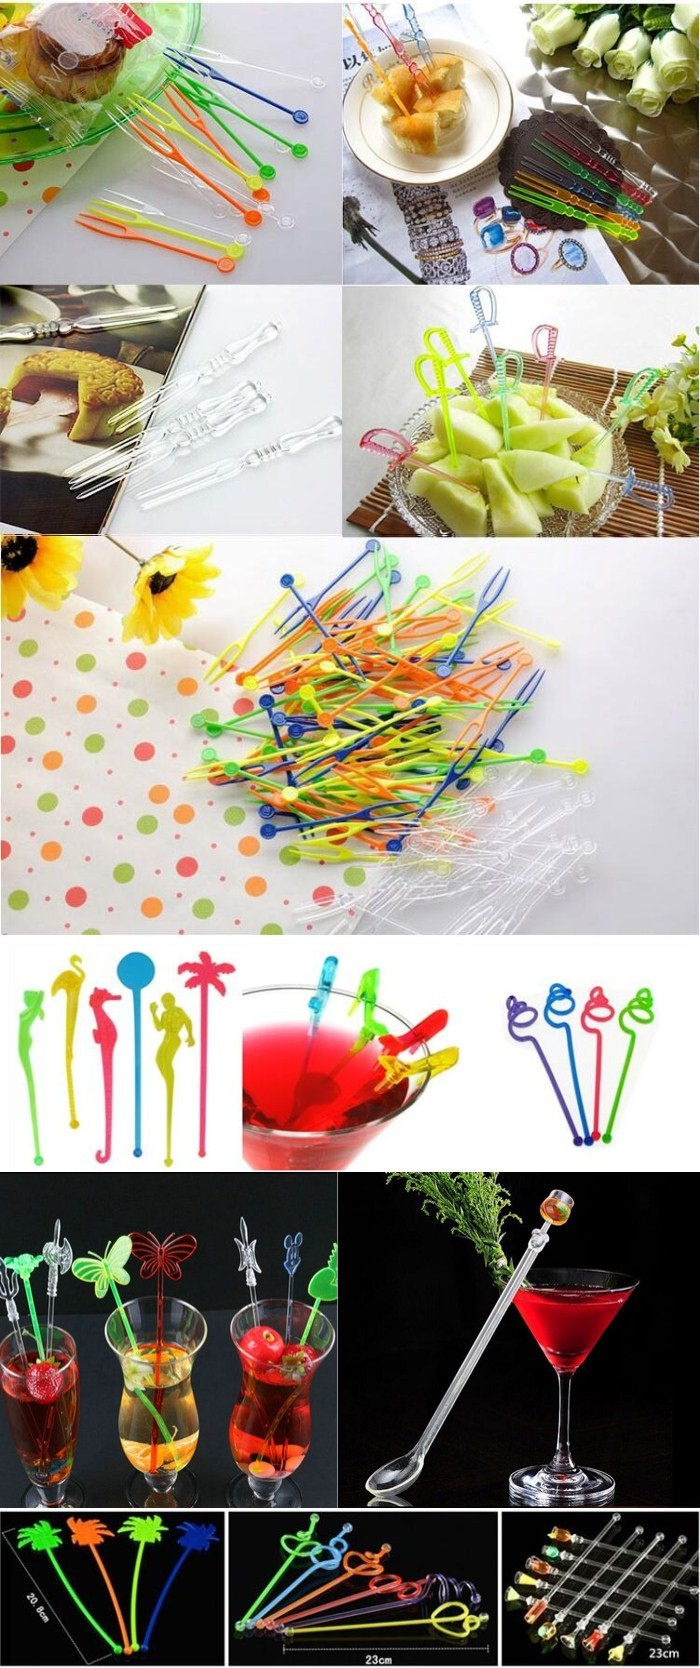 Disposable Degradable 10/12 cm Transparent Plastic Prism Picks